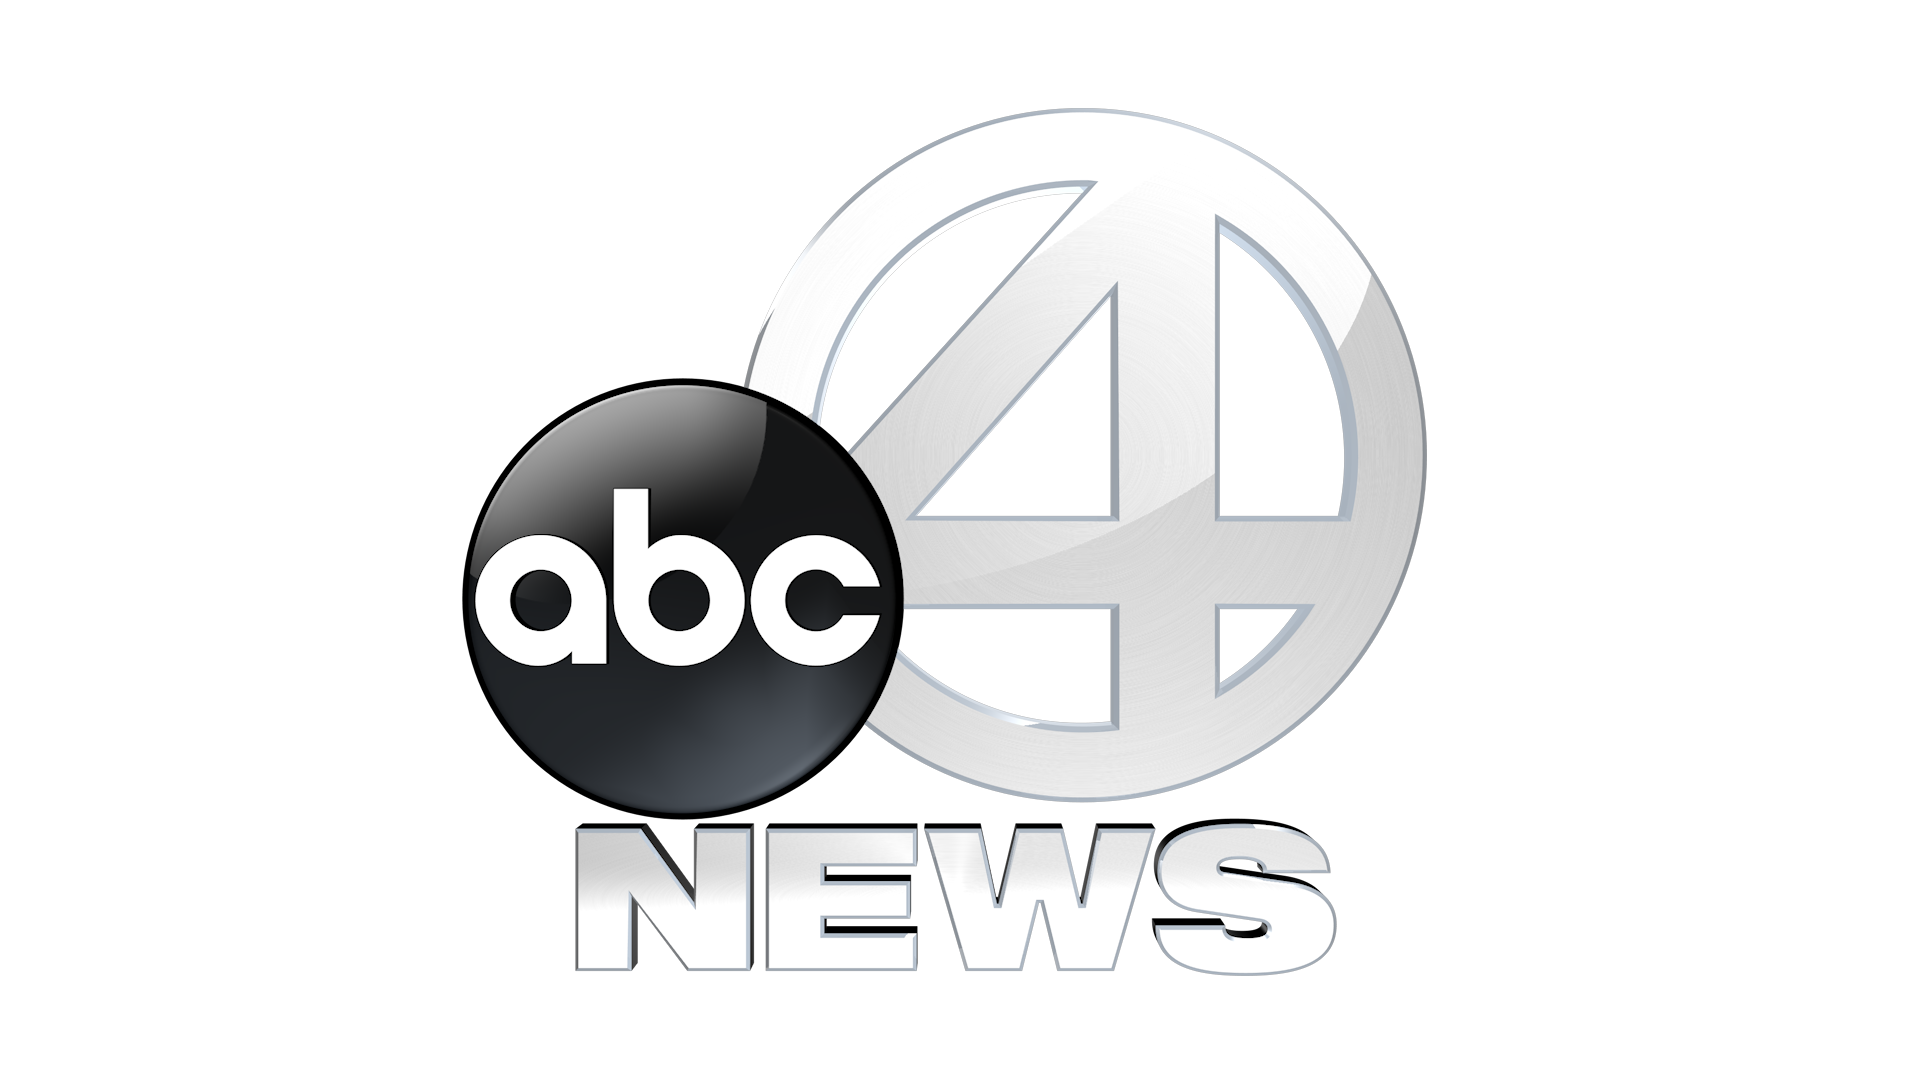 1920x1080 Abc News Talk Vector Png Transparent Abc News Talk Vector.png